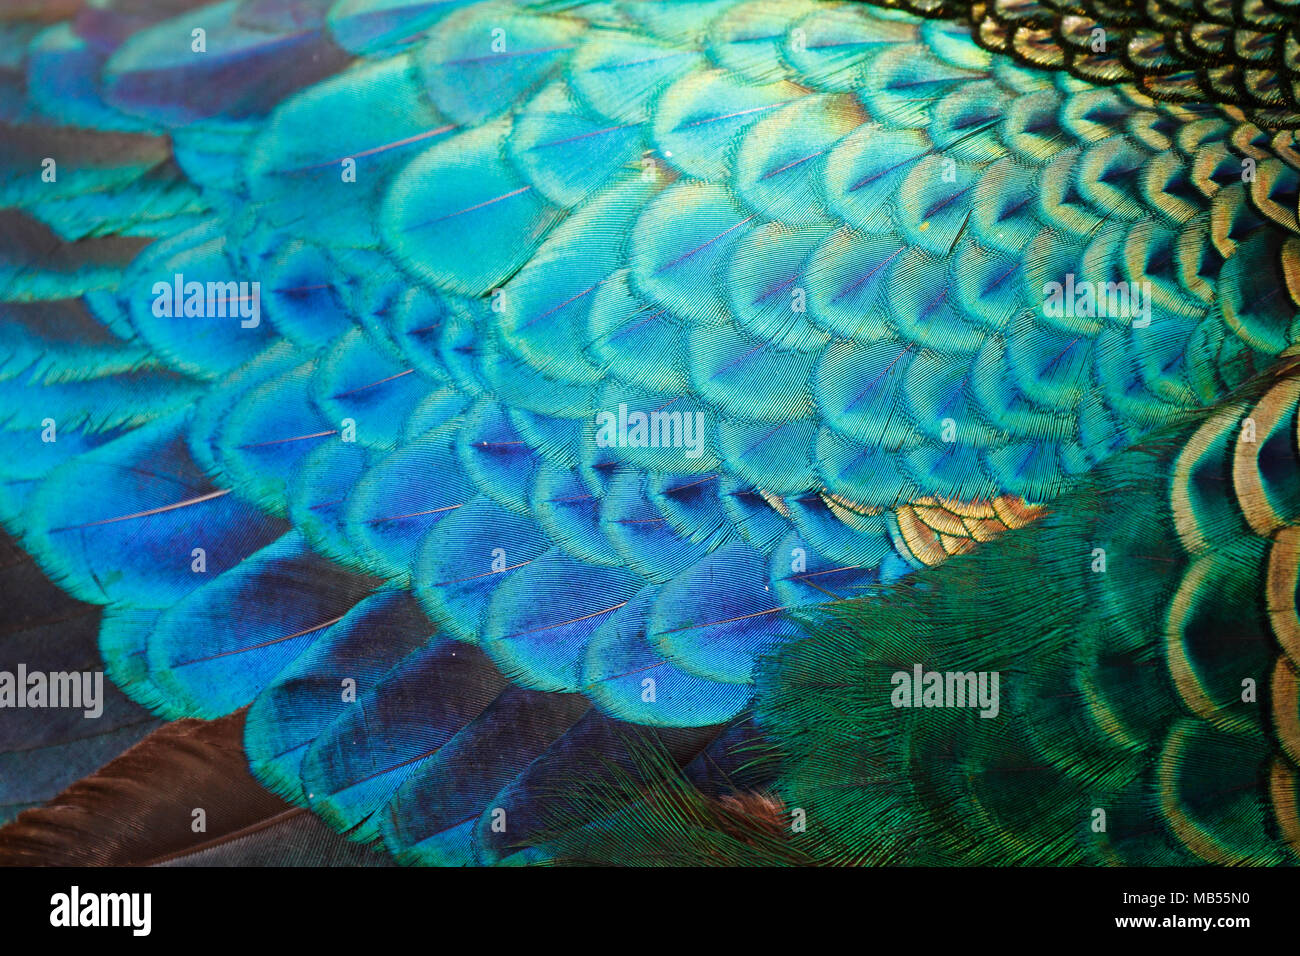 Feathers detail of male green peafowl / peacock (Pavo muticus) (shallow dof) - Stock Image